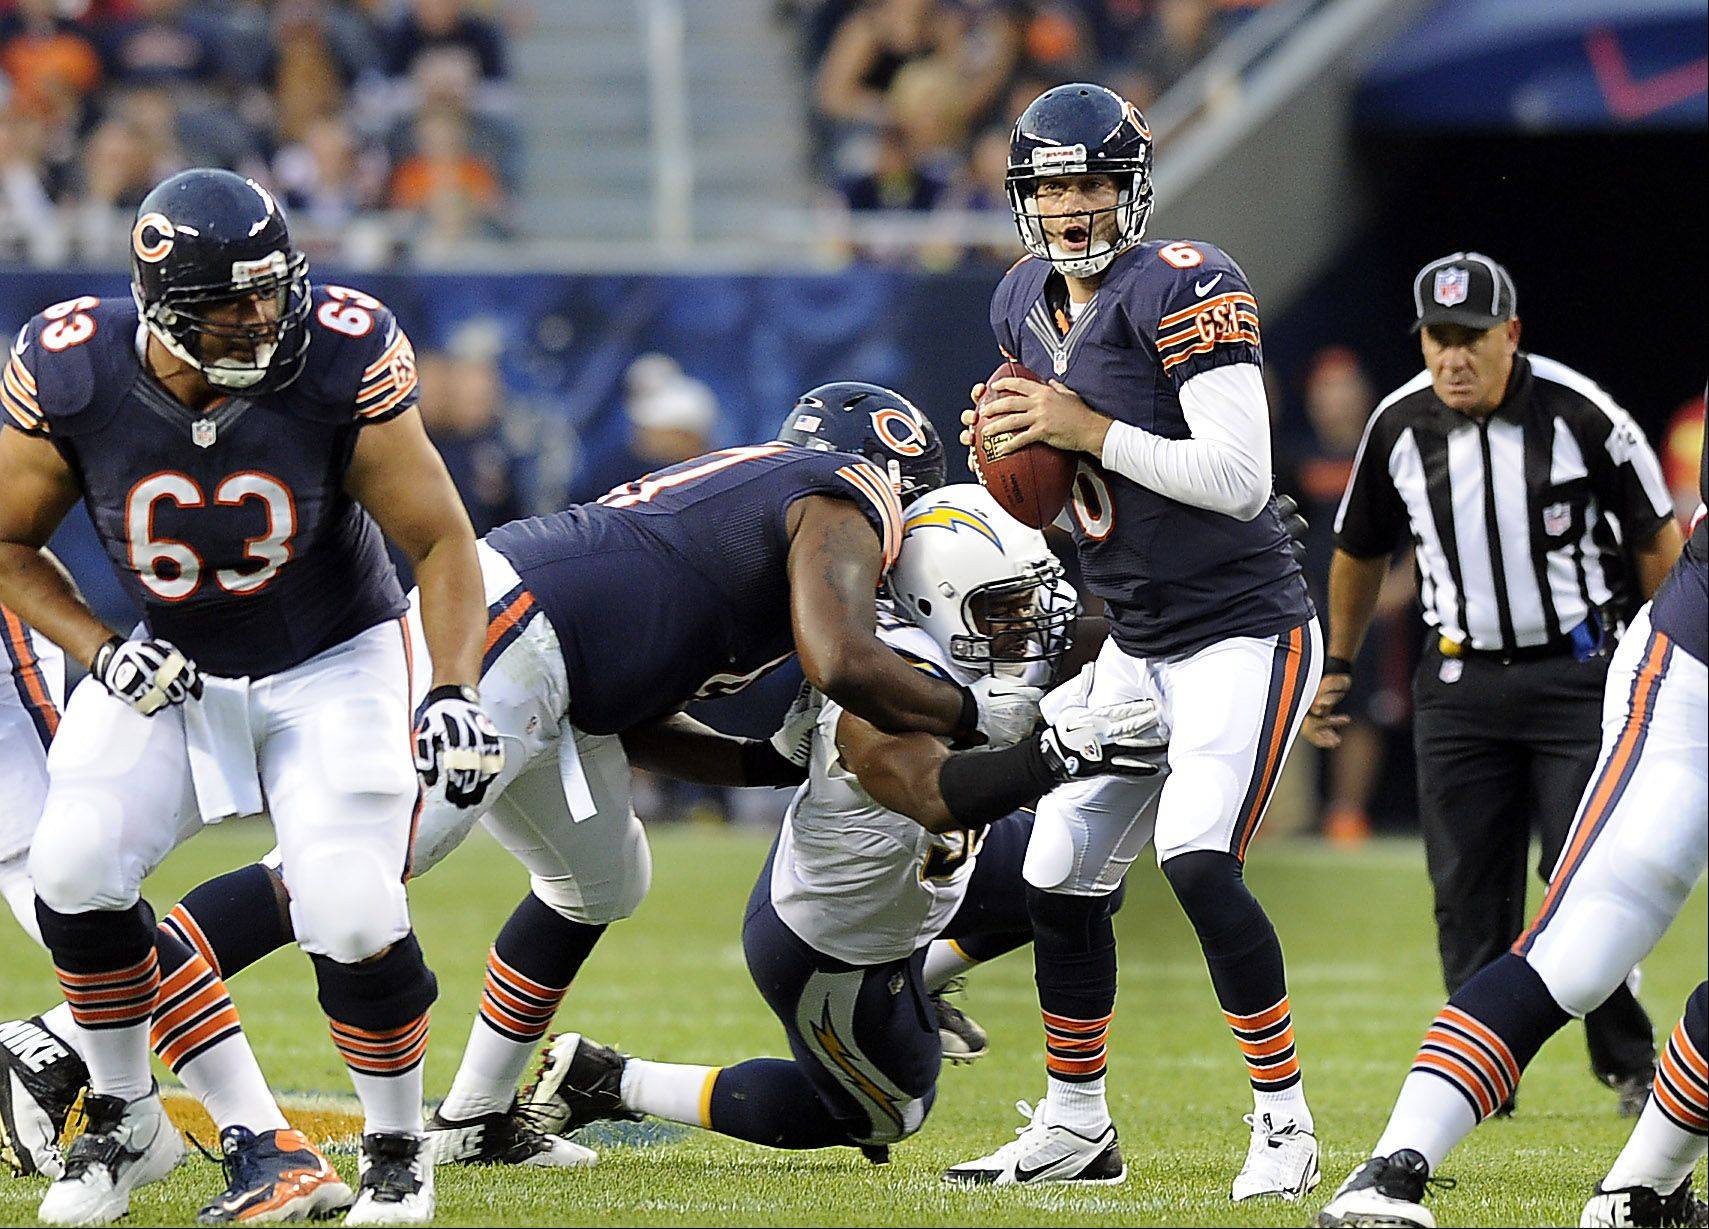 Chicago Bears quarterback Jay Cutler throws a interception on this play in the first half.